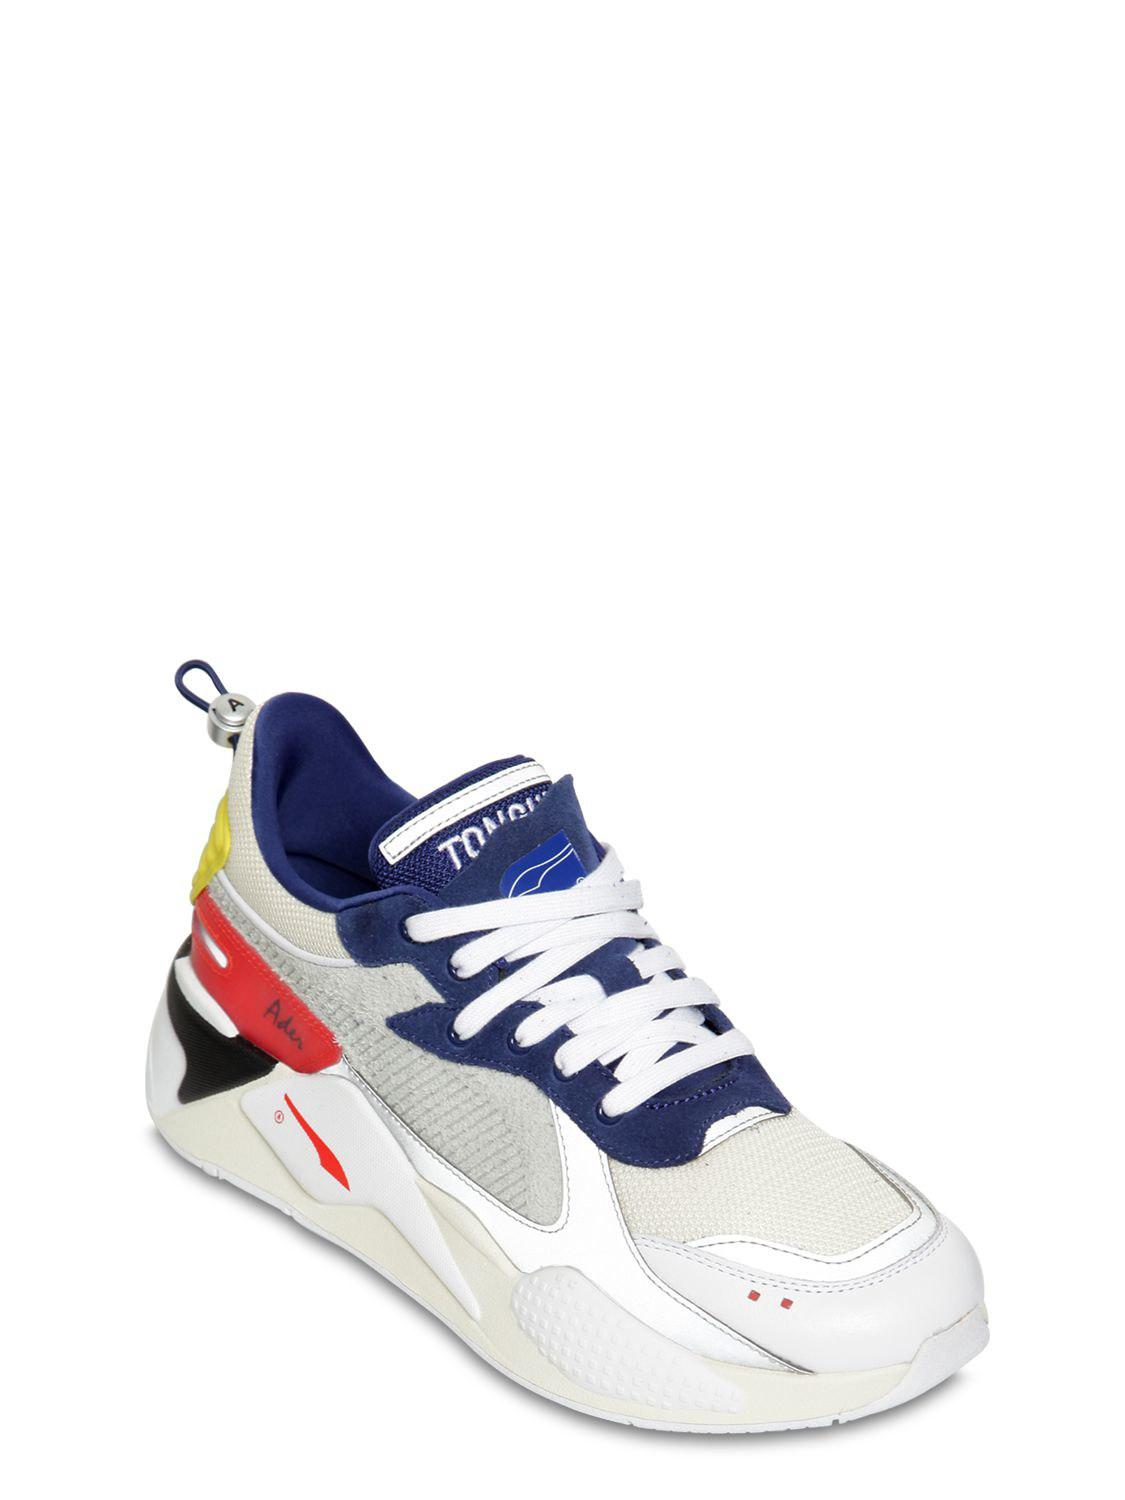 7f16a7f7e276 Lyst - Puma Select Rs-x Ader Error Leather   Mesh Sneakers in Blue for Men